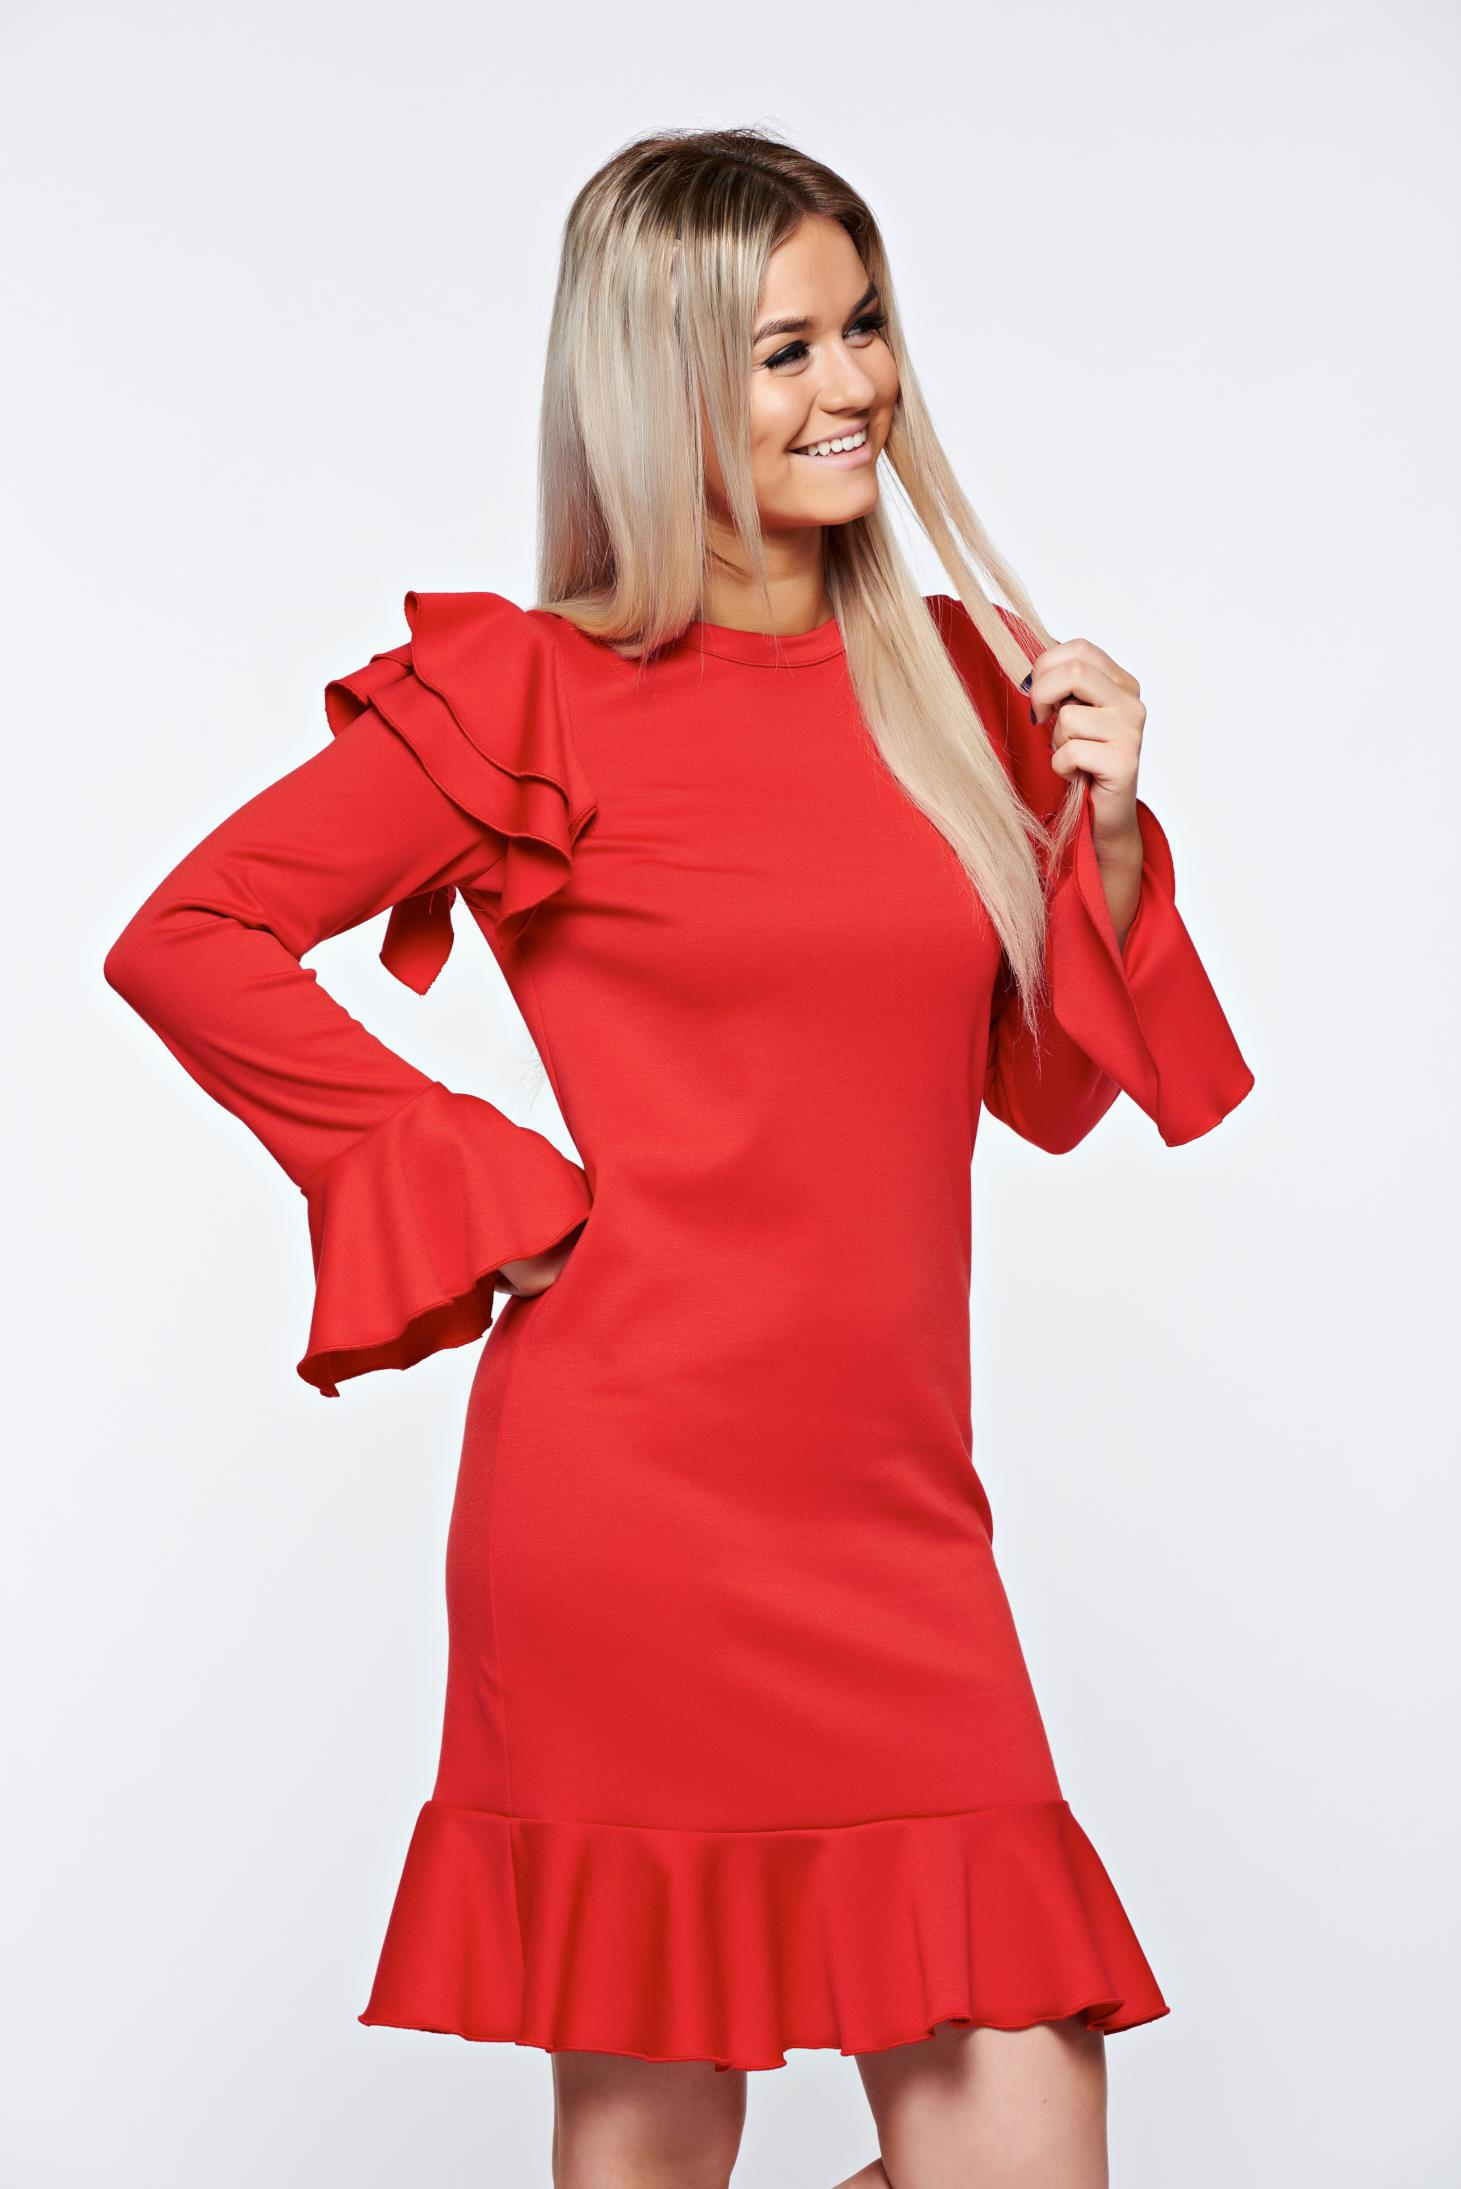 With ruffle details with easy cut elegant